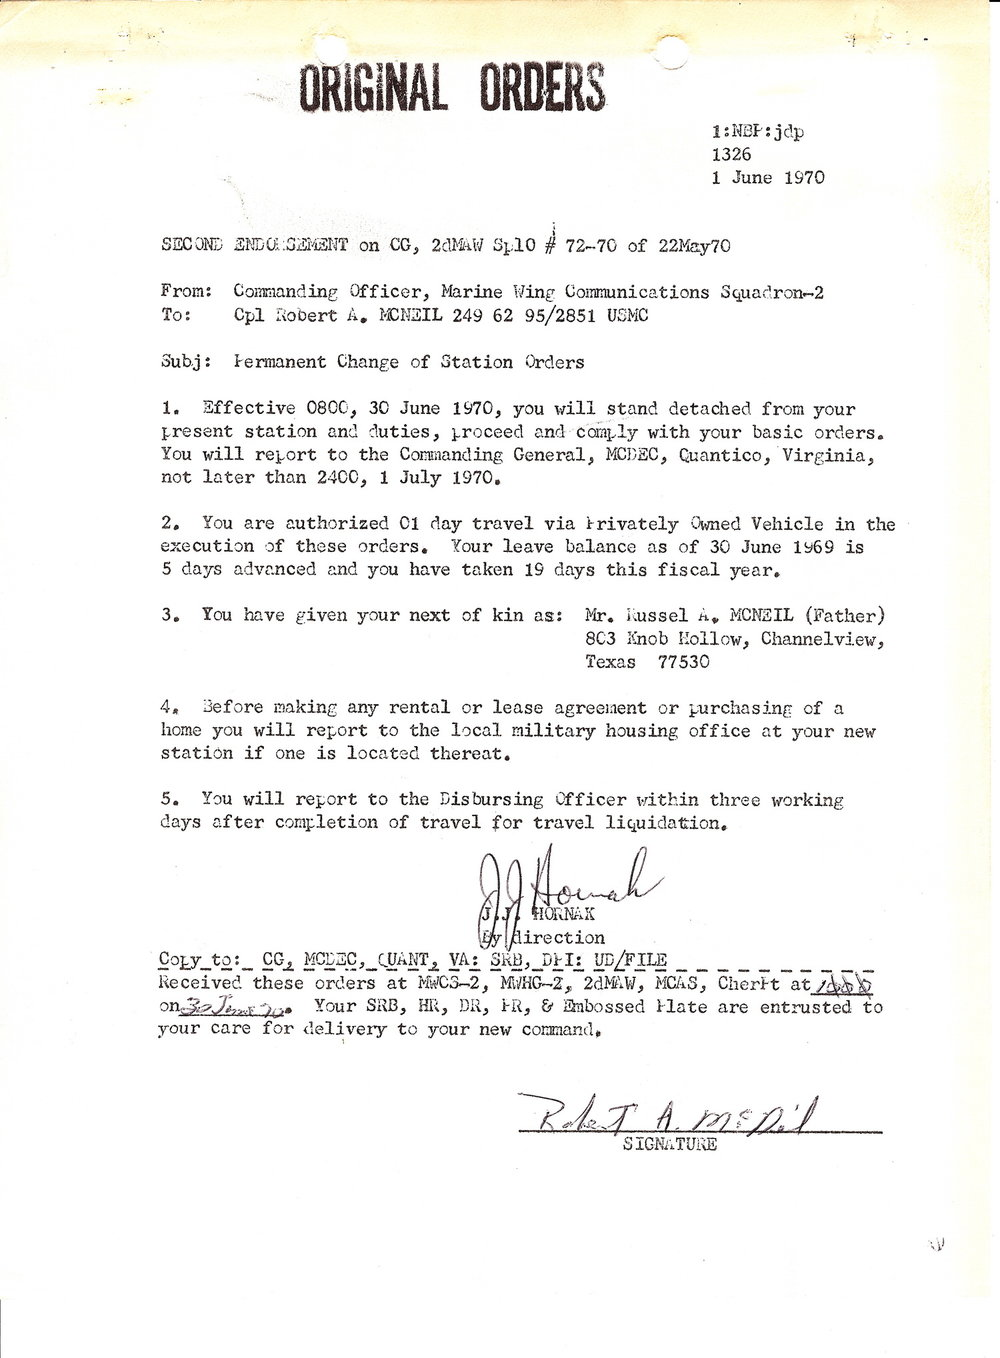 Bob McNeil - June 30, 1970 - Age 21 - U.S. Marine Corps - Orders to Marine Corps Development and Education Command (MCDEC), Quantico, Virginia - Page 1 of 2